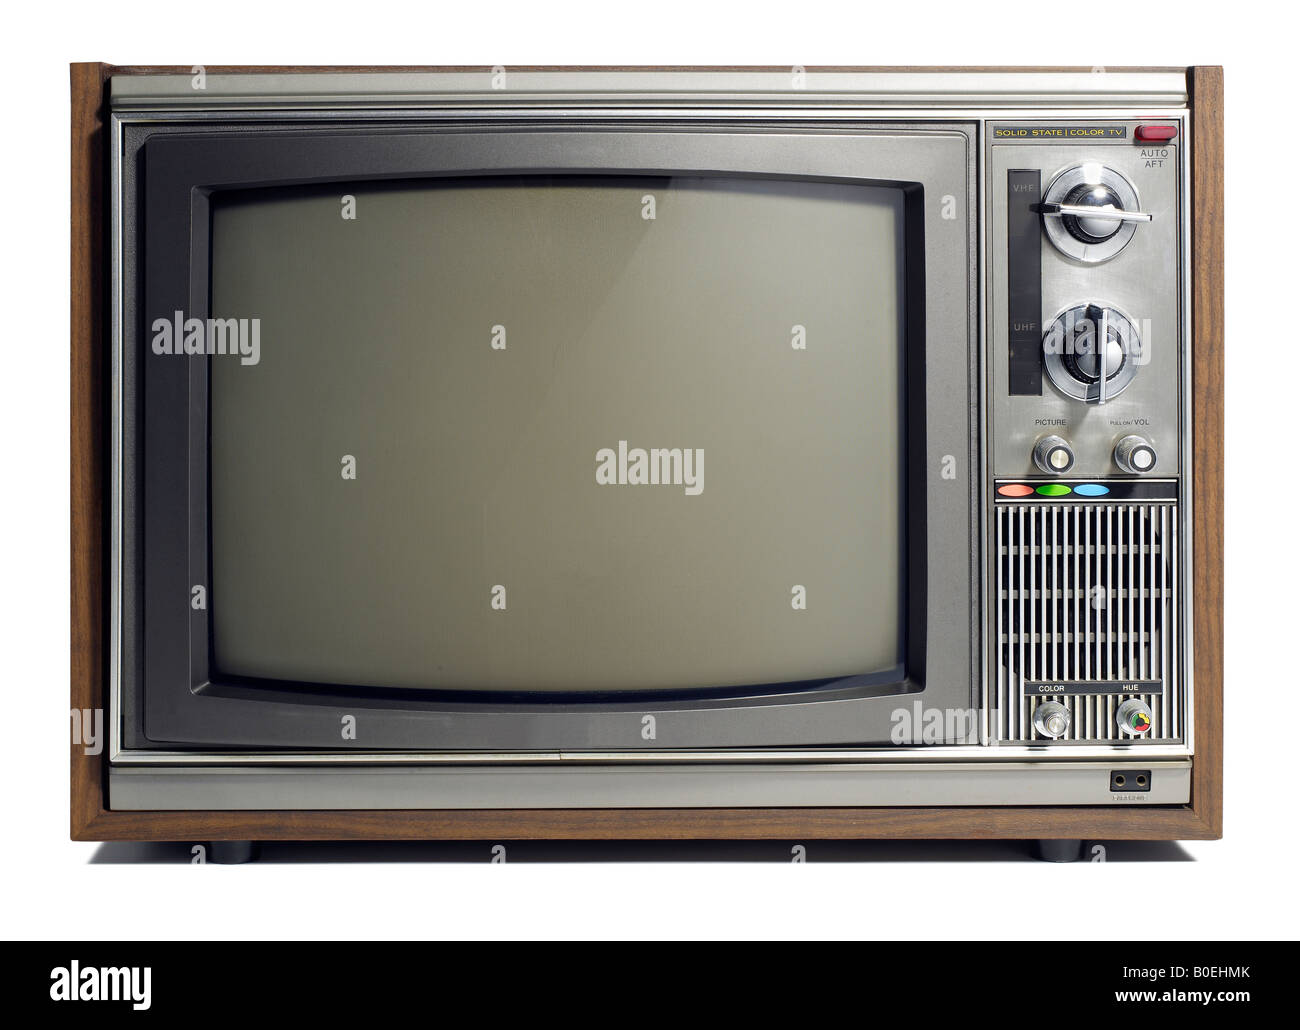 Old Tube Television CRT TV Stock Photo